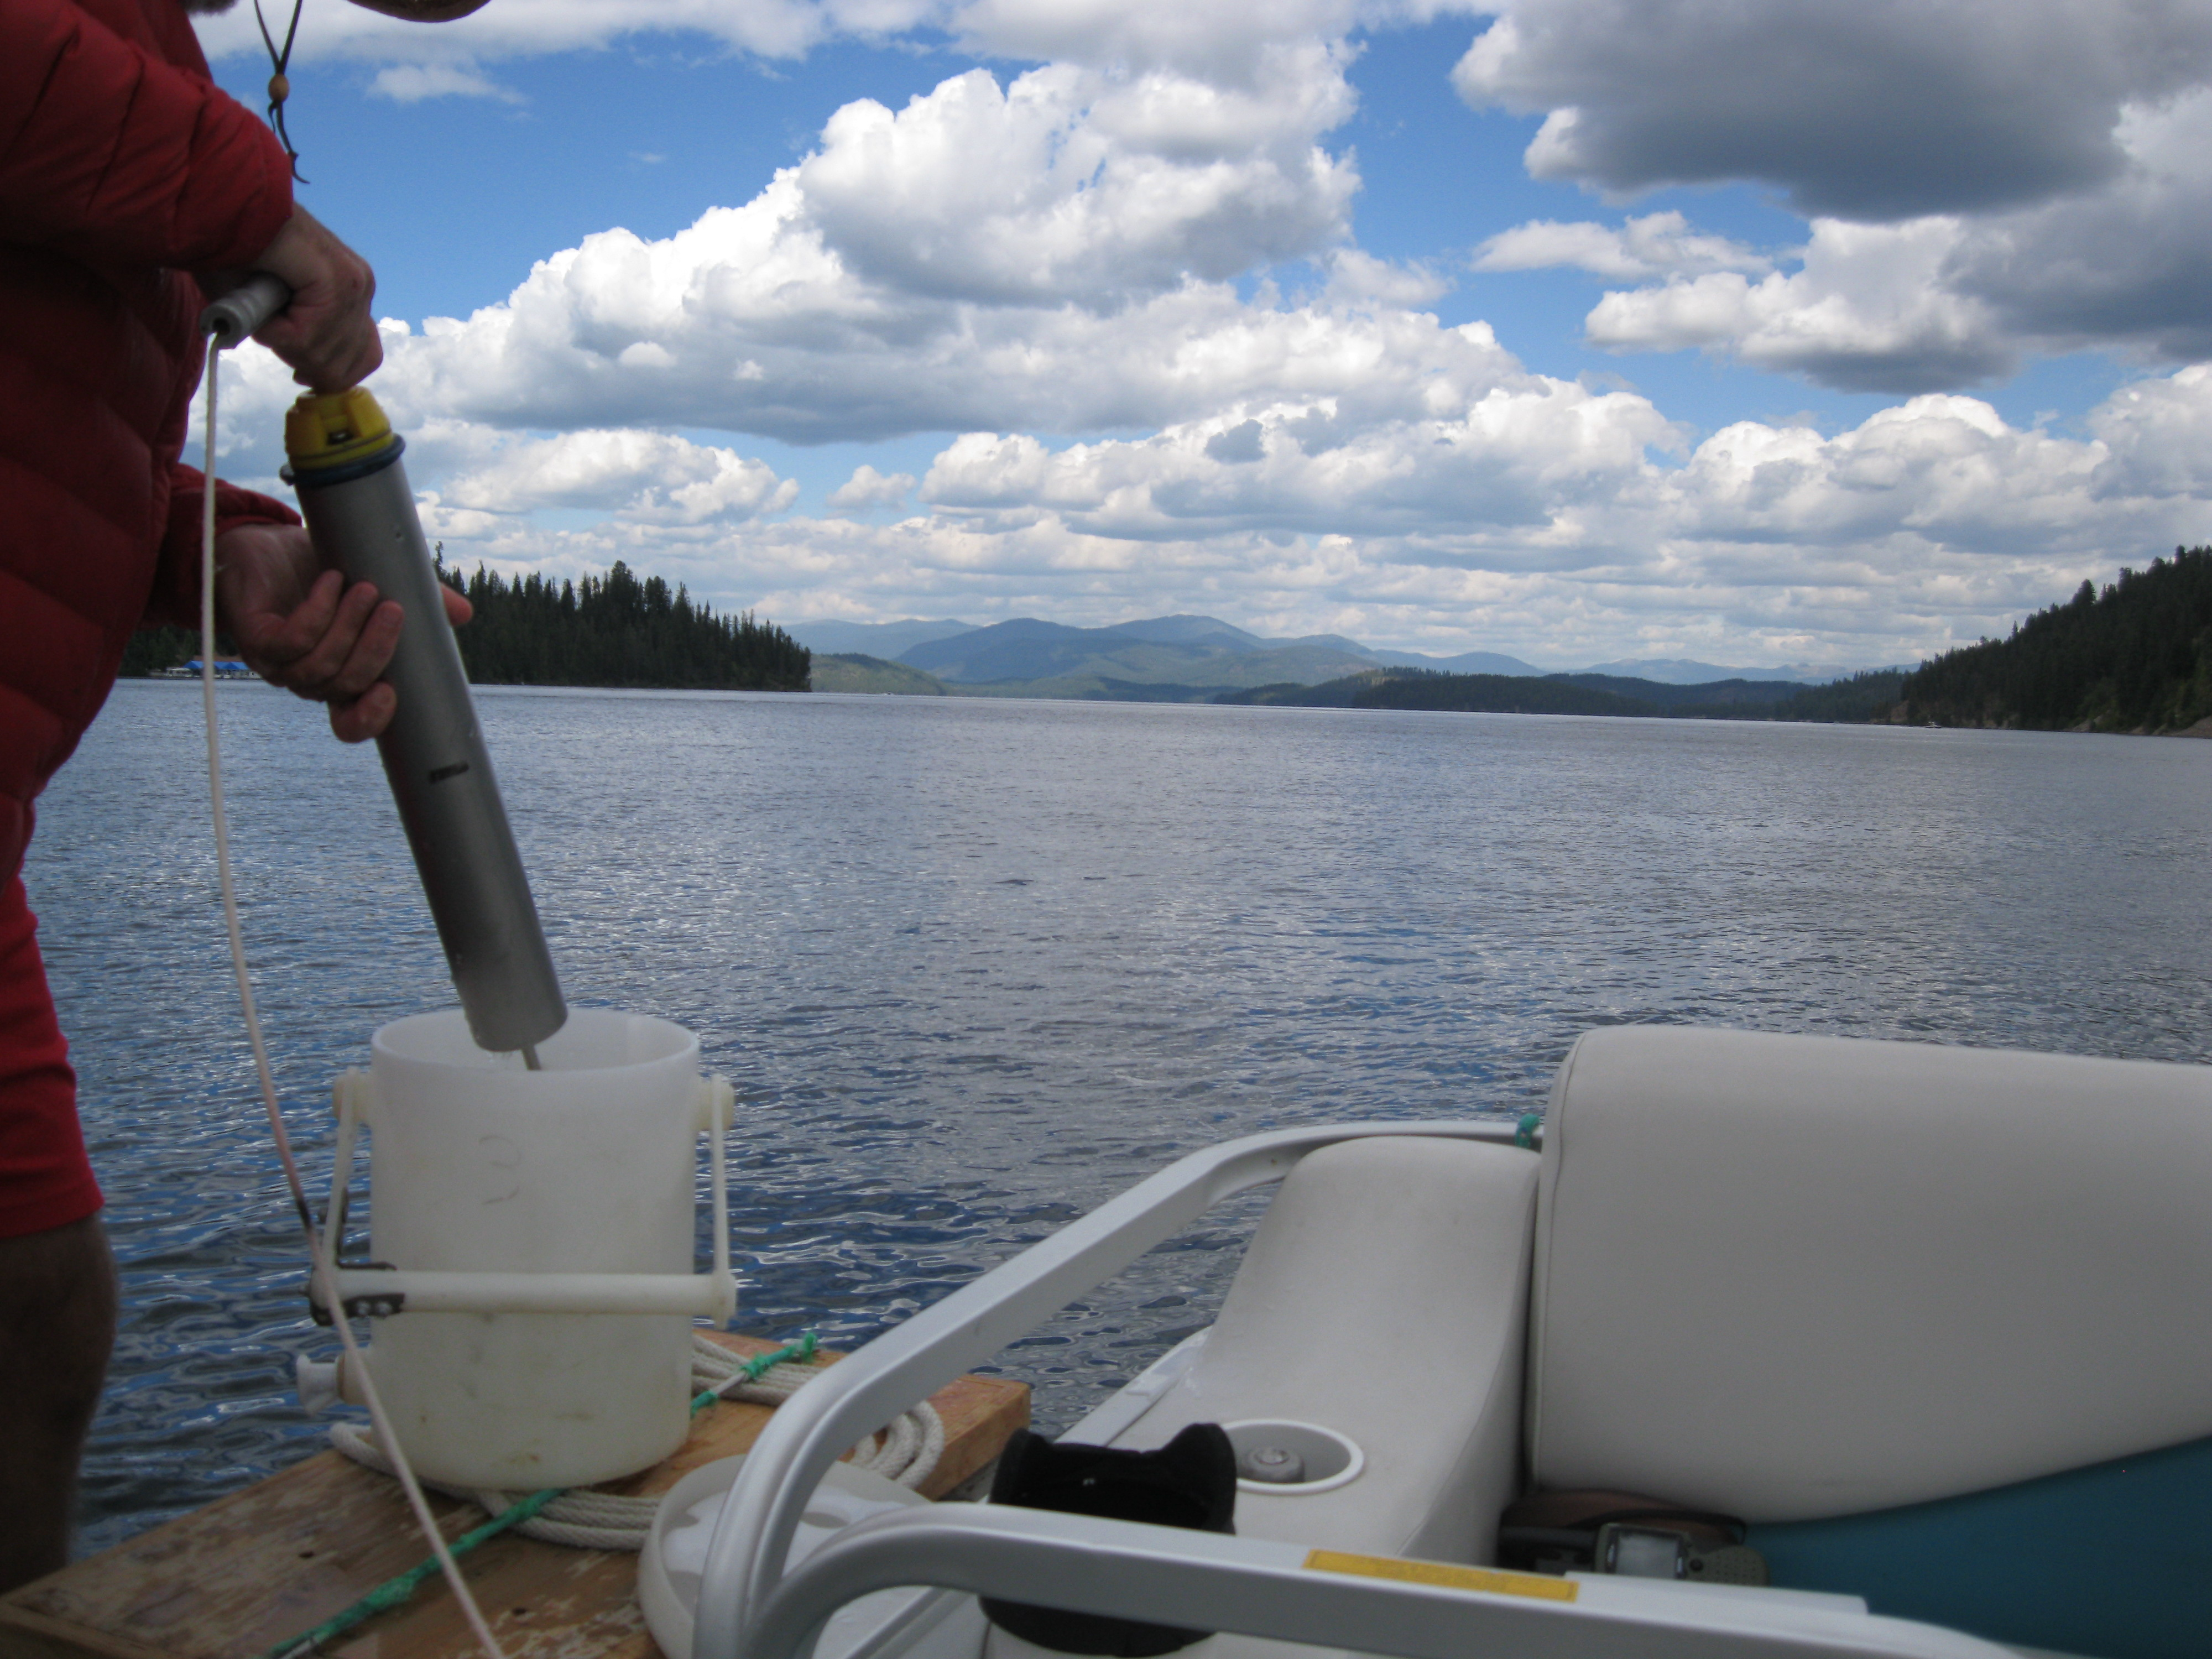 Priest Lake Water Quality Monitoring